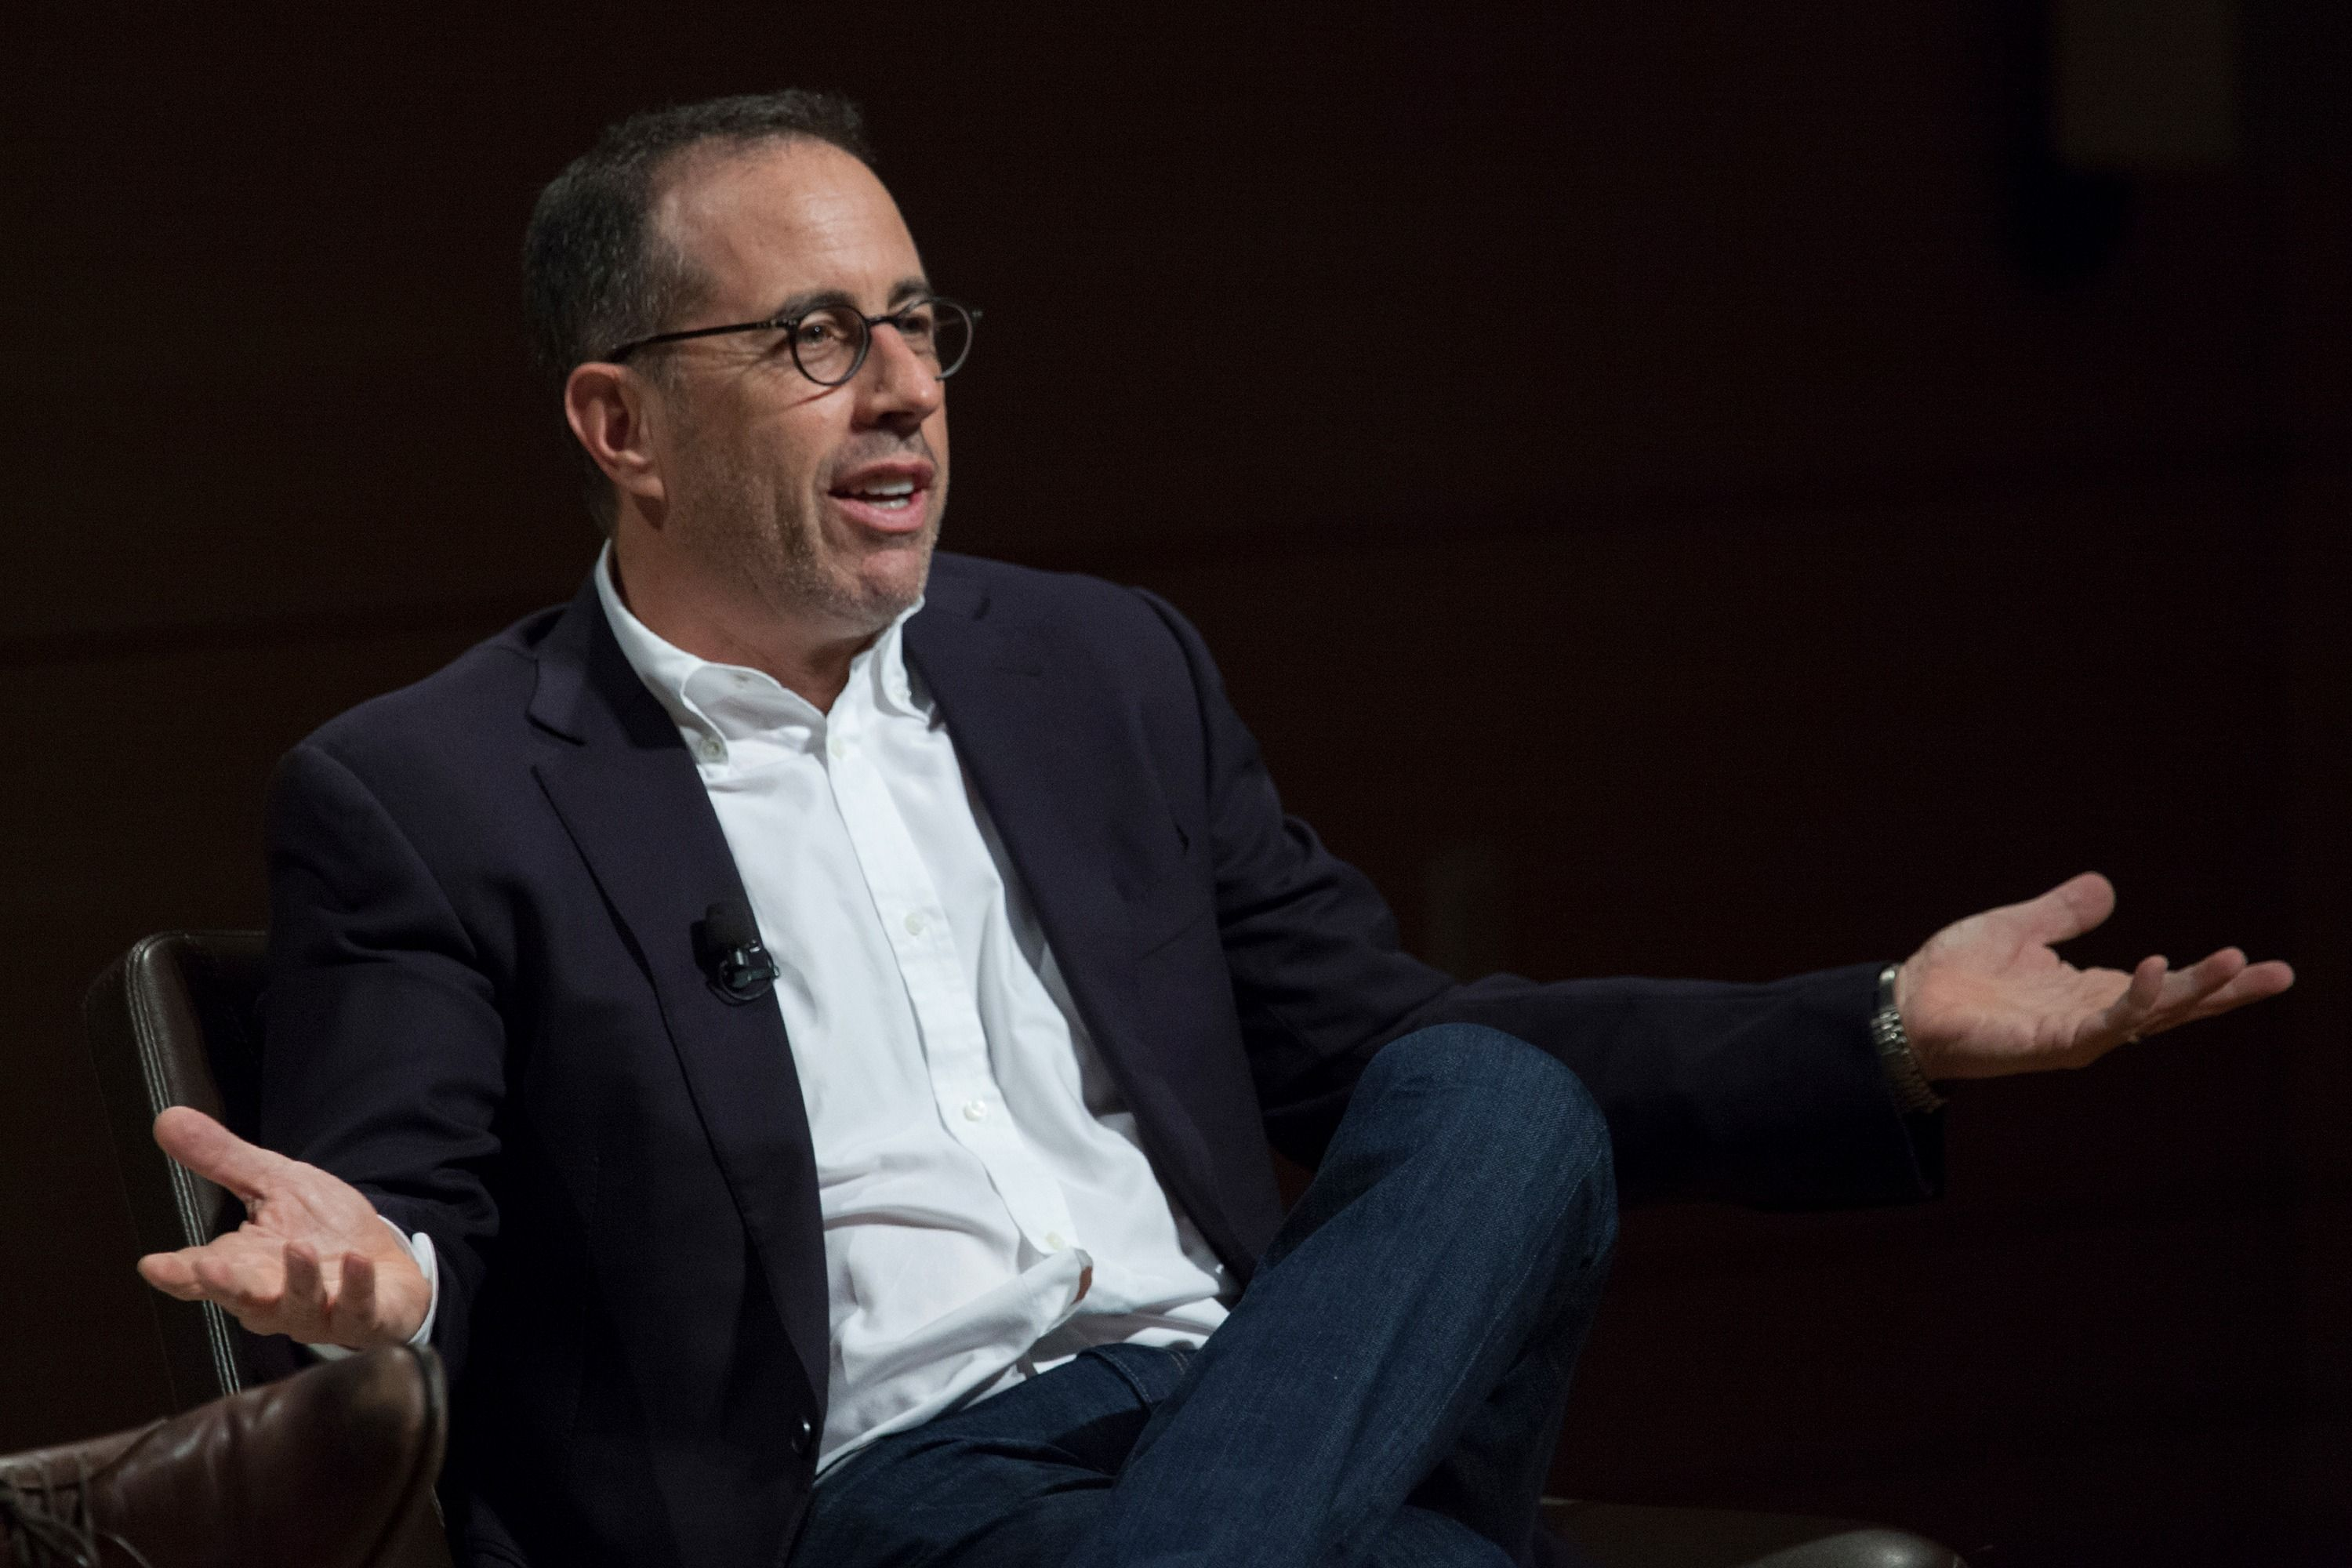 So he begrudgingly took to facebook to sell the suit and also decided - Jerry Seinfeld Reckons With Bill Cosby S Tainted Legacy In Cringeworthy Video